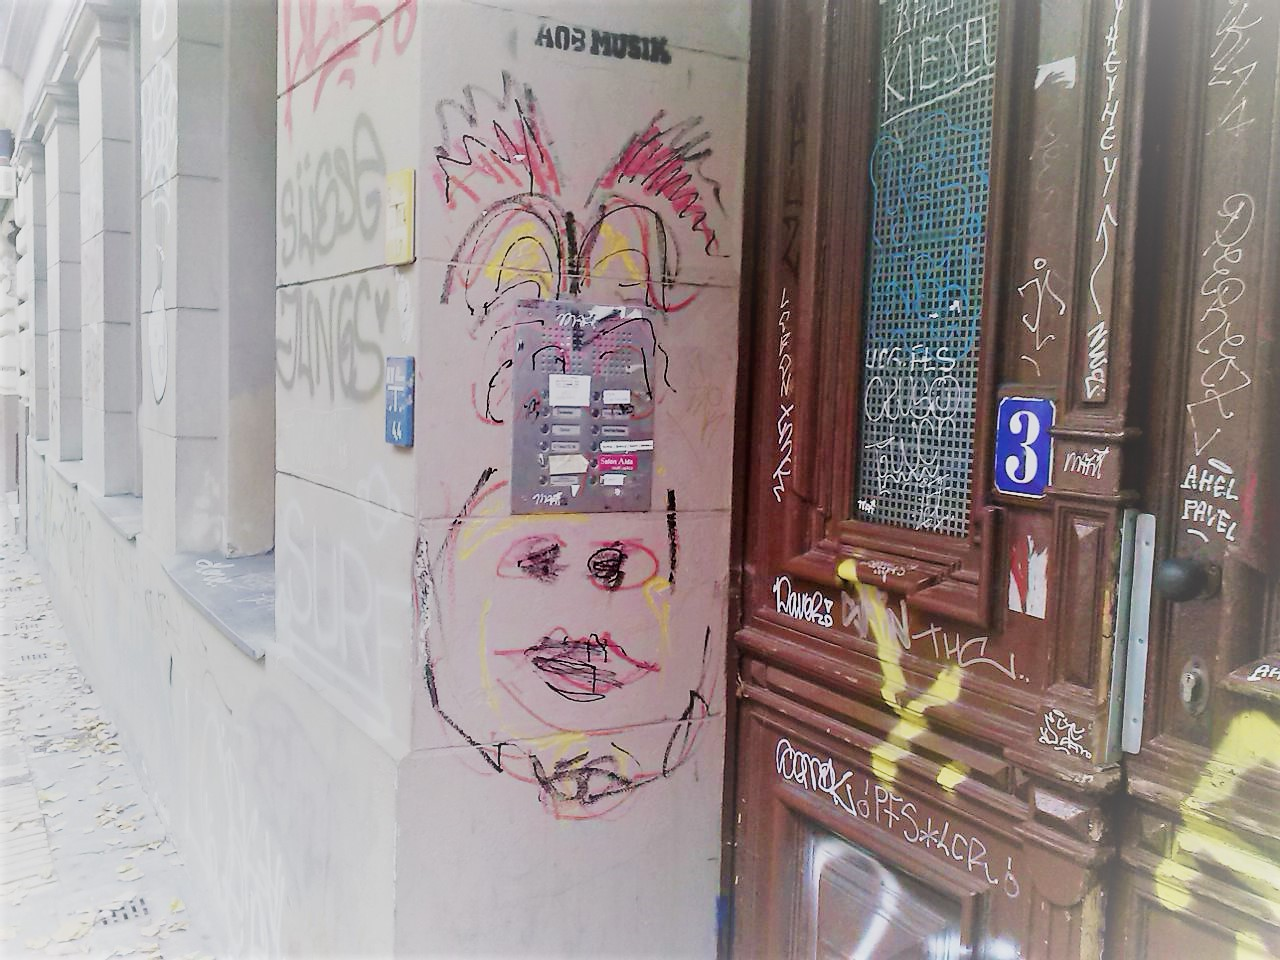 03154 | berliner mauern | berlin, drawing, graffiti